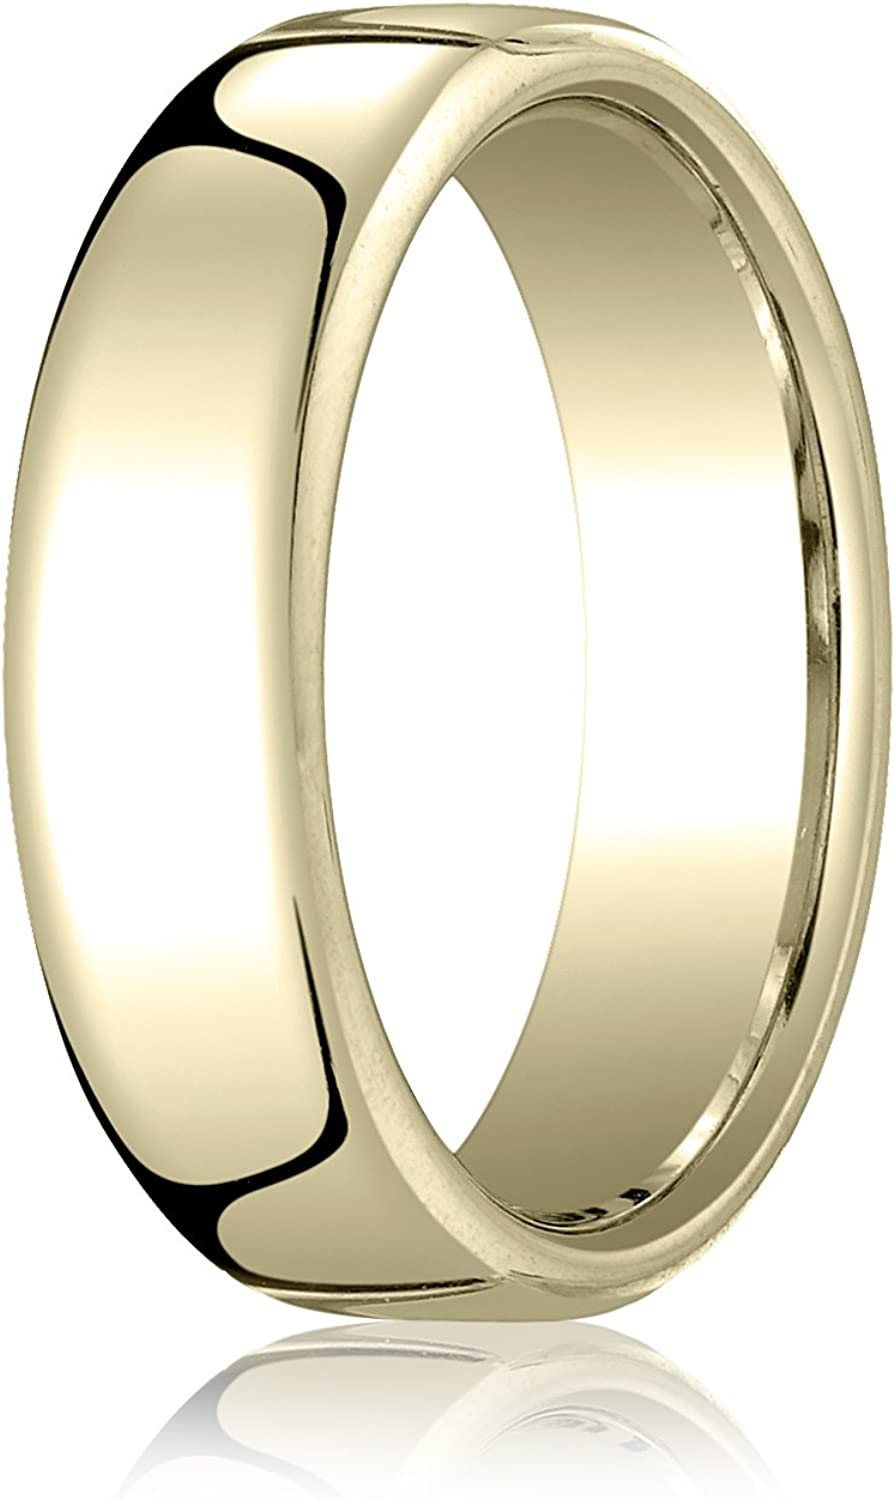 Men's 10K Yellow Gold 6.5mm London Couture Comfort Fit Wedding Band Ring